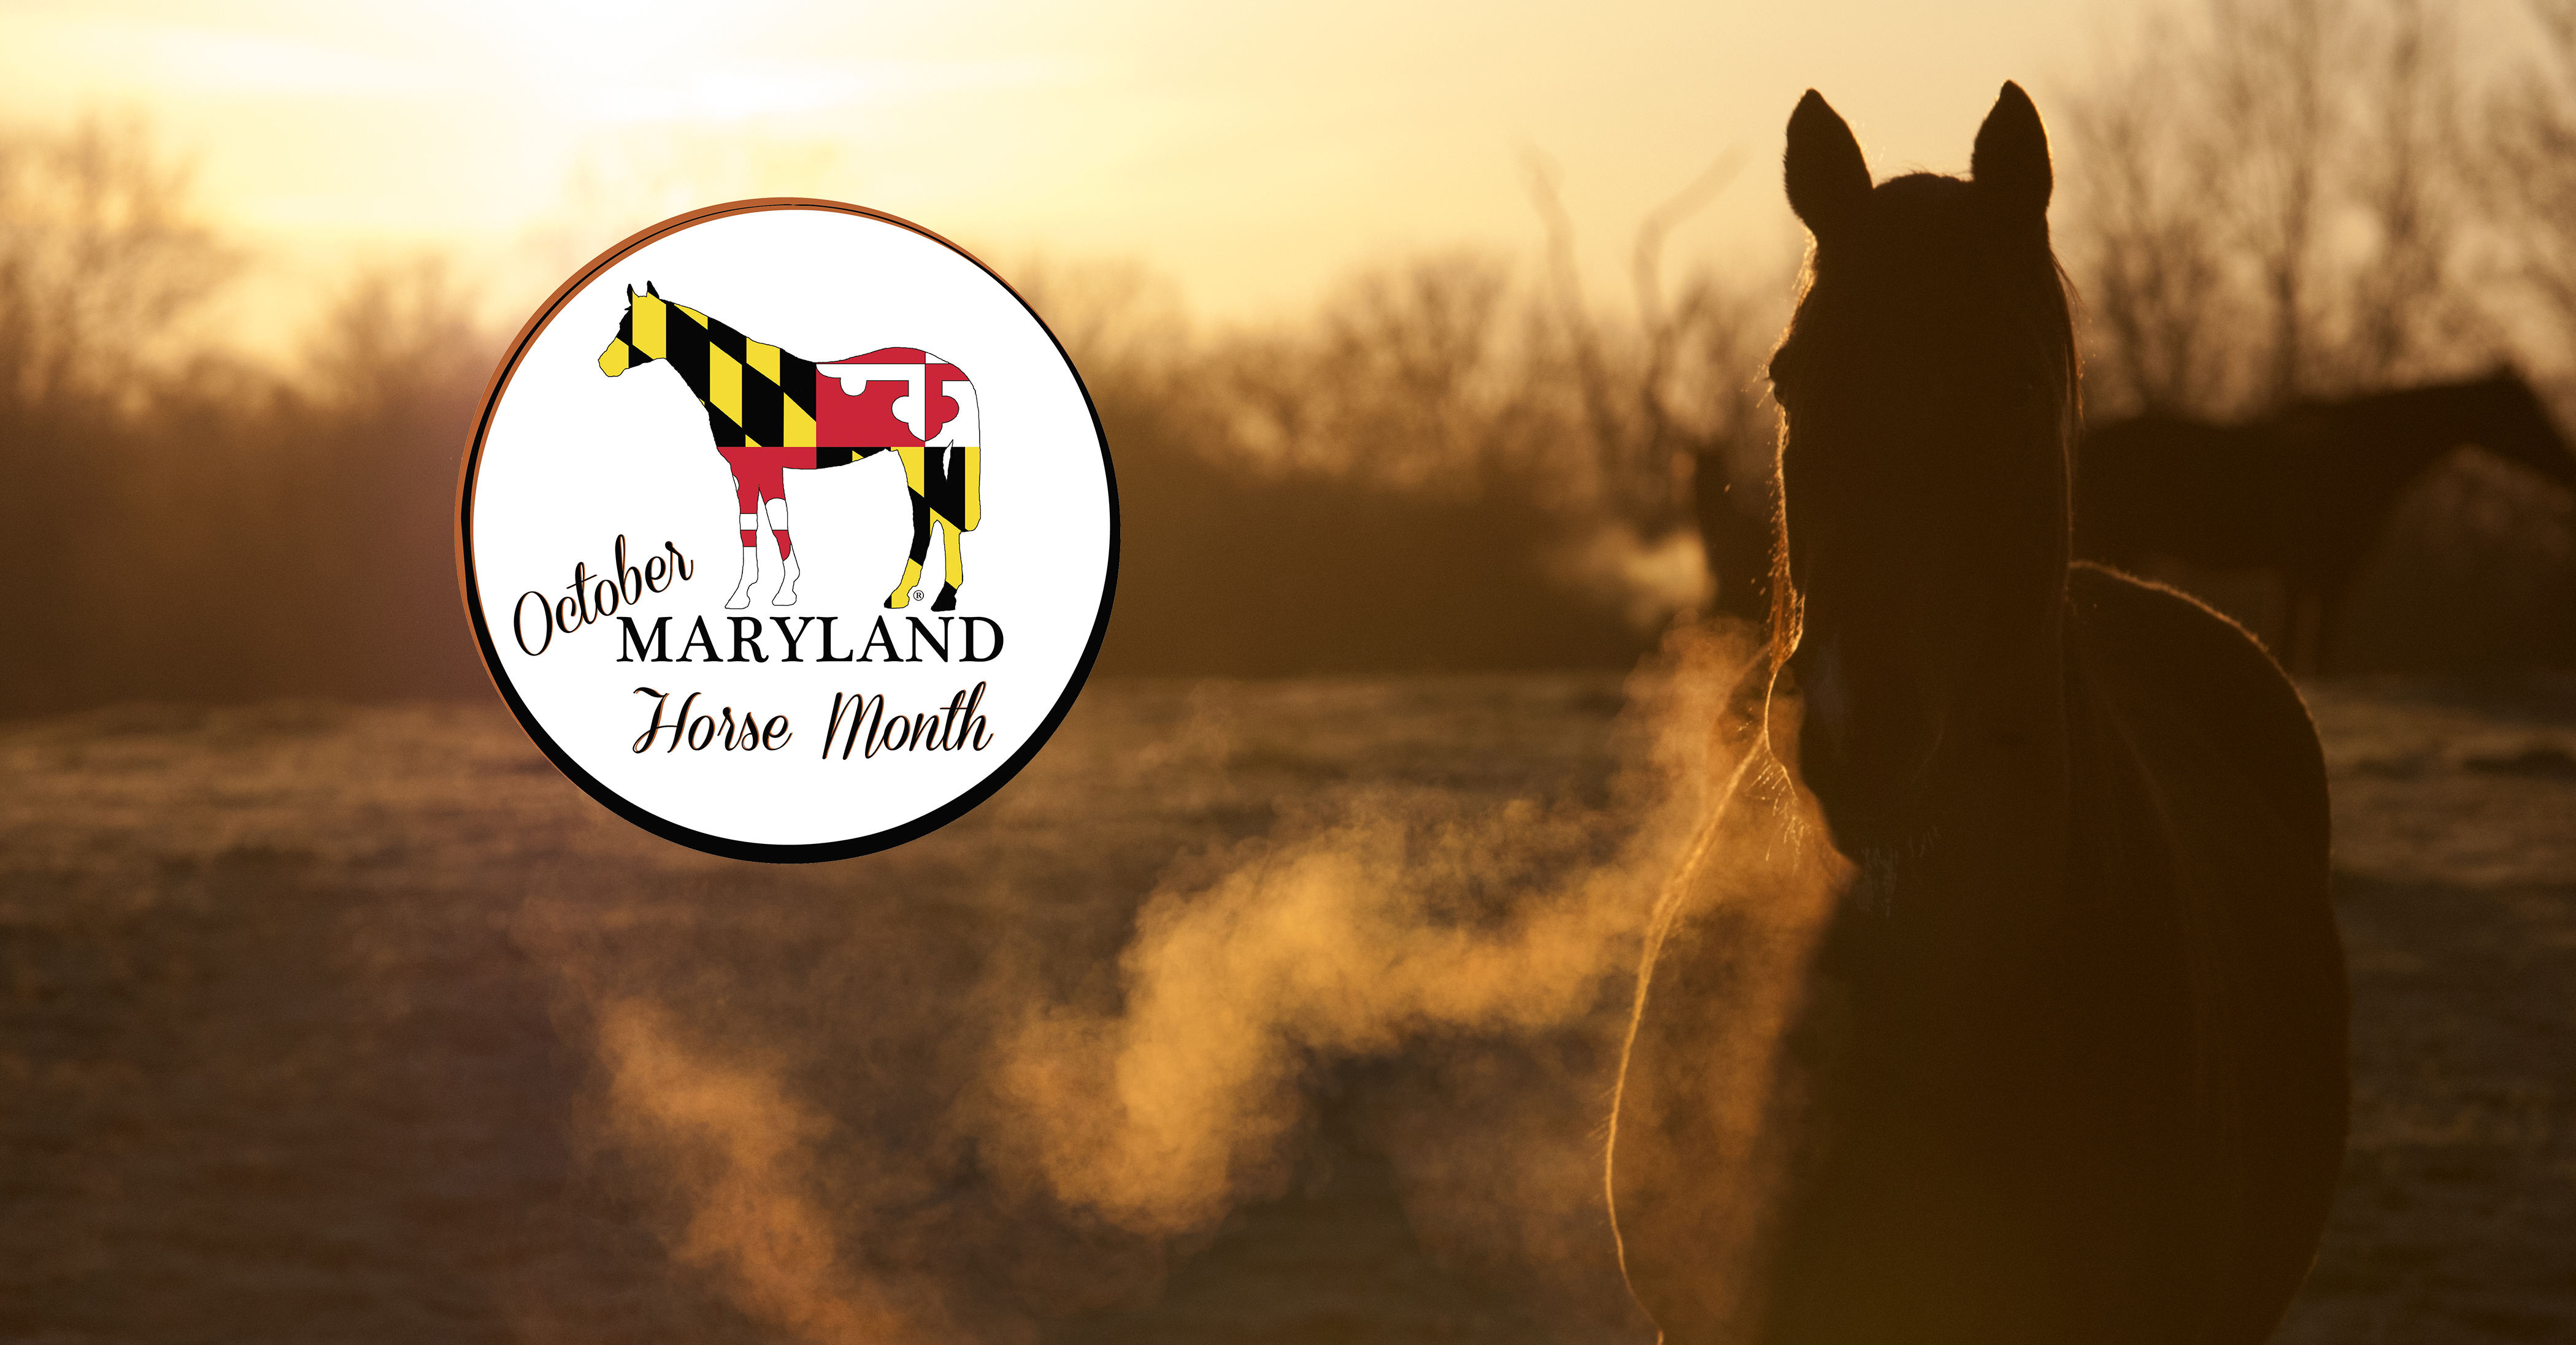 October is Maryland Horse Month